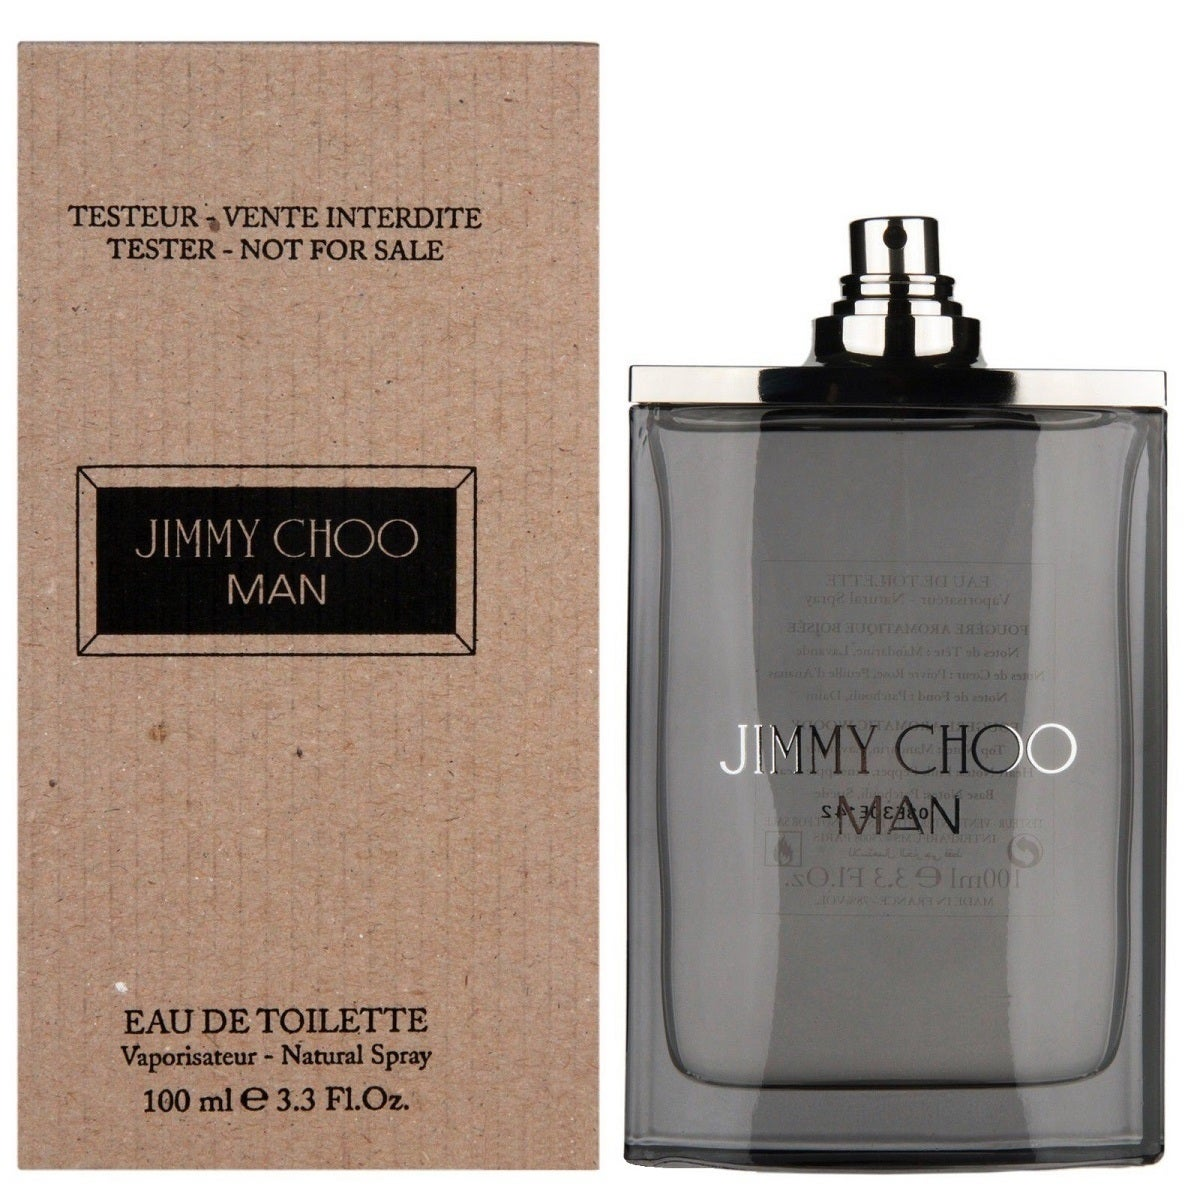 5e24cac1cf29 Shop Jimmy Choo Man 3.3-ounce Eau de Toilette Spray (Tester) - Free  Shipping Today - Overstock - 10469340